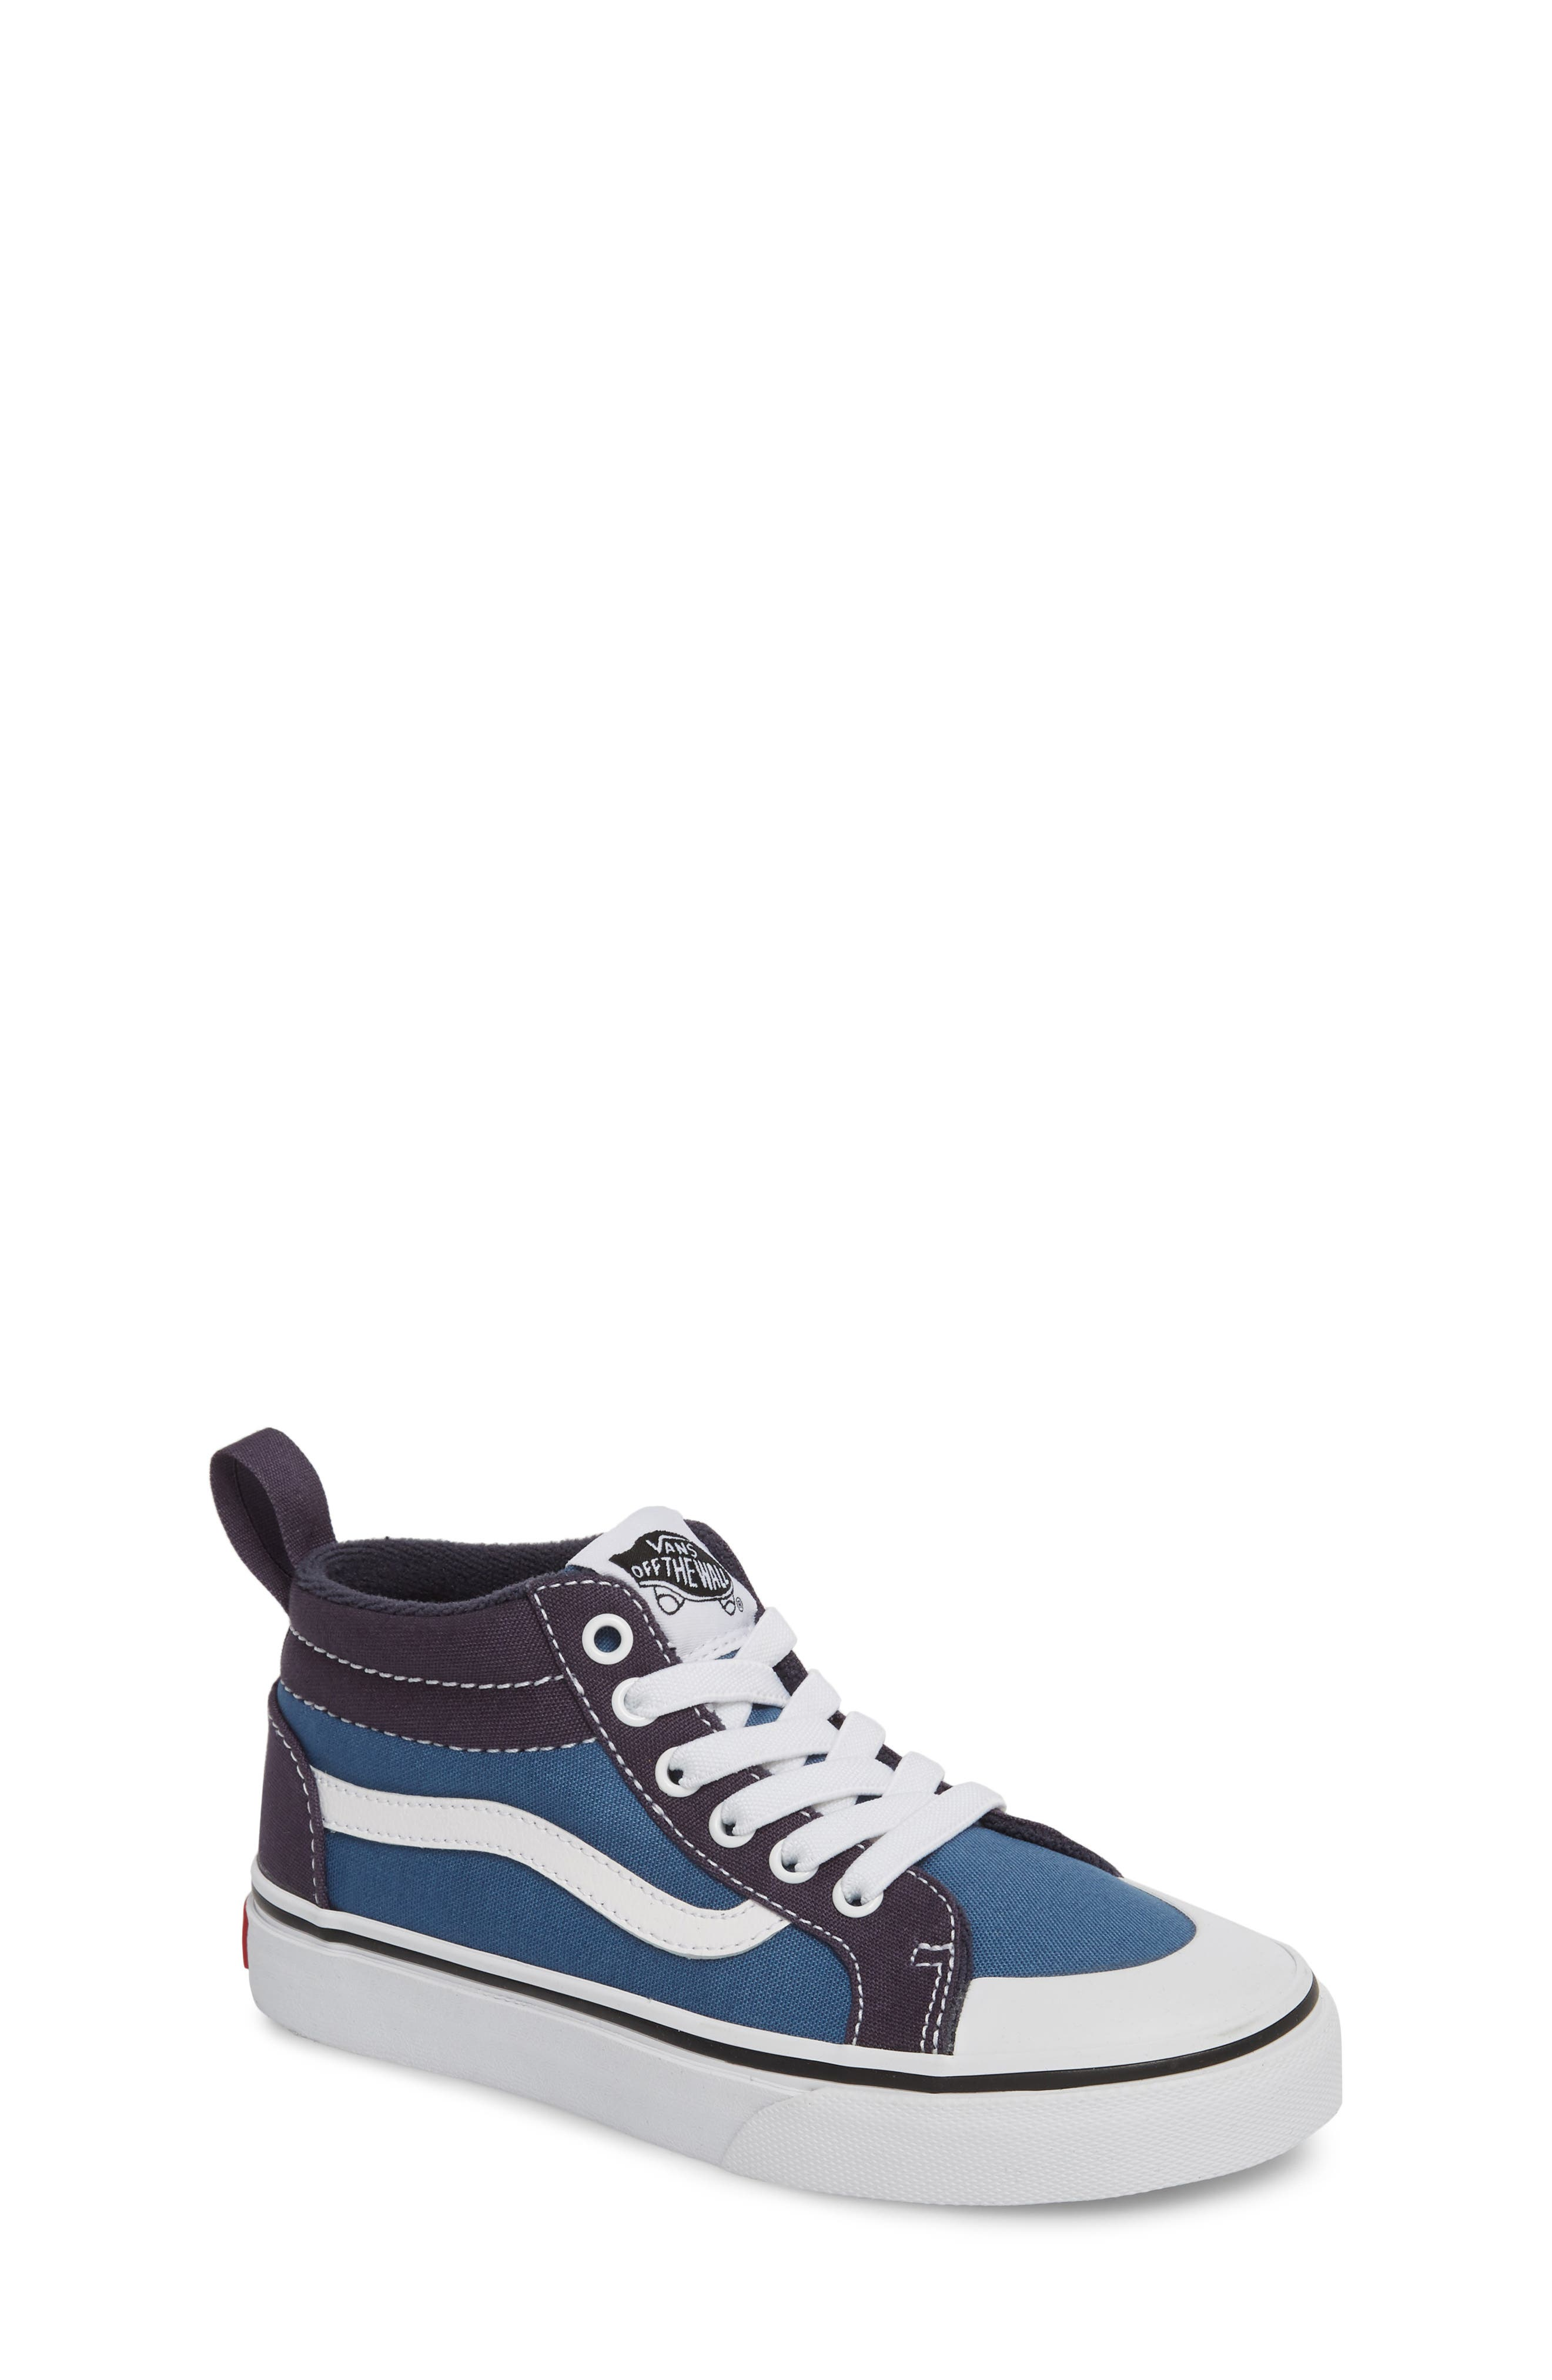 Racer Mid Elastic Lace Sneaker,                         Main,                         color, Navy/ Navy